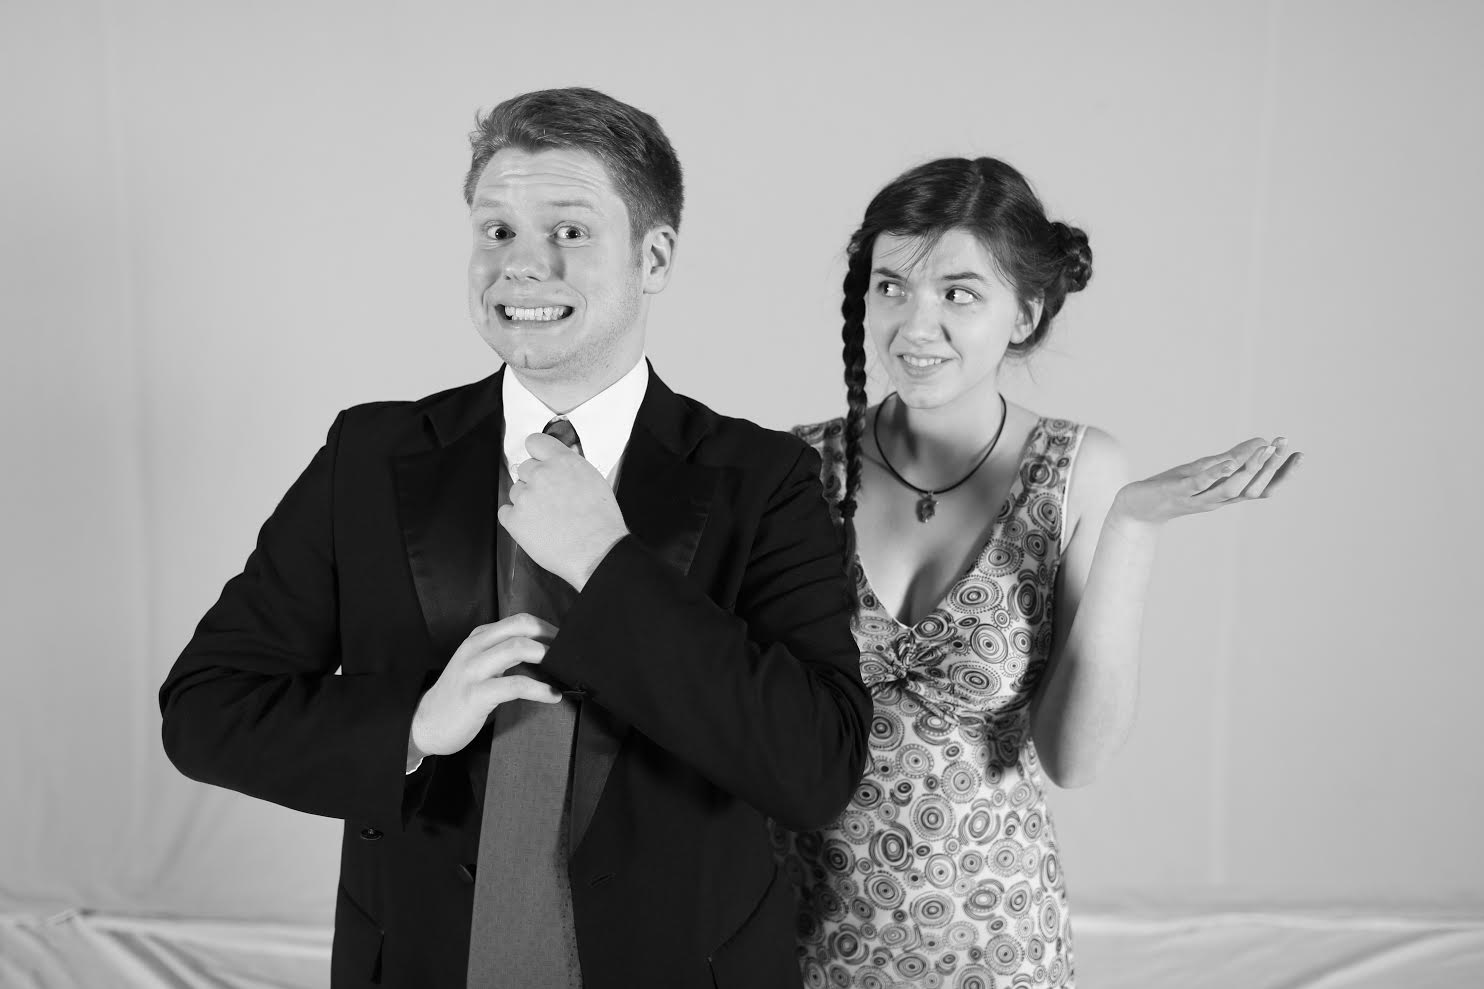 Cast members Nolan Lewis and Amy Winkle